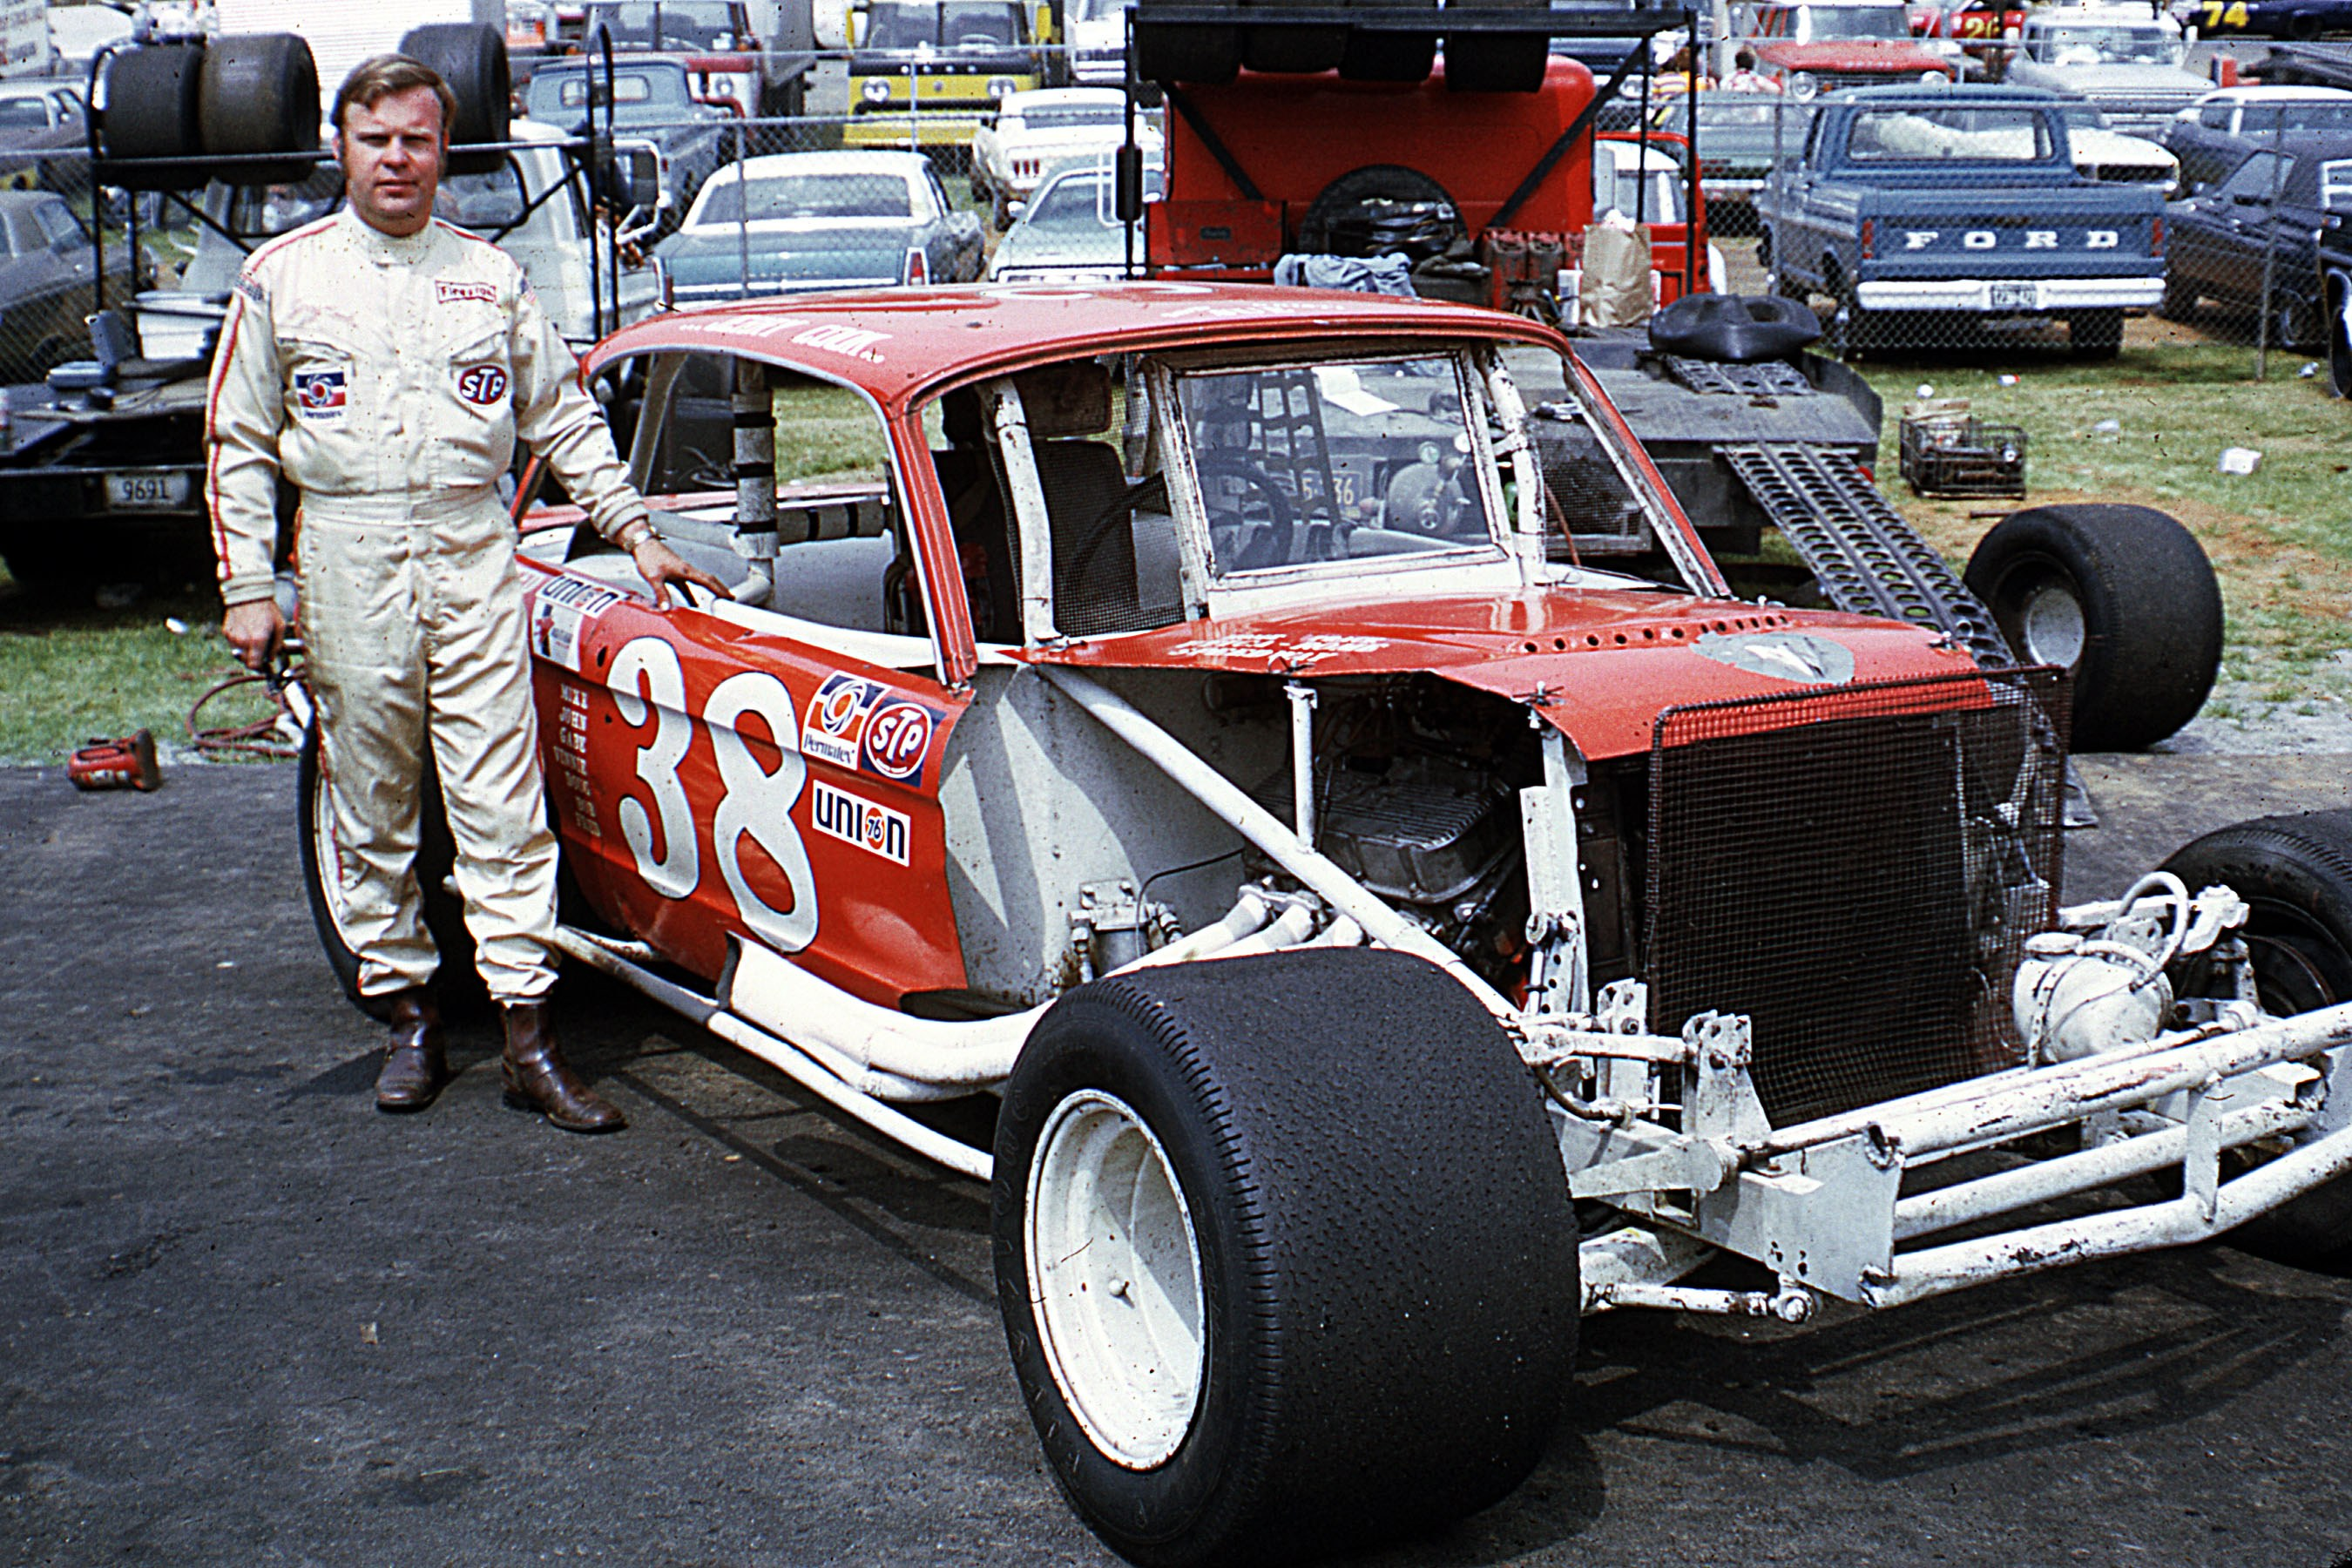 Modified Racers Became Hall of Famers